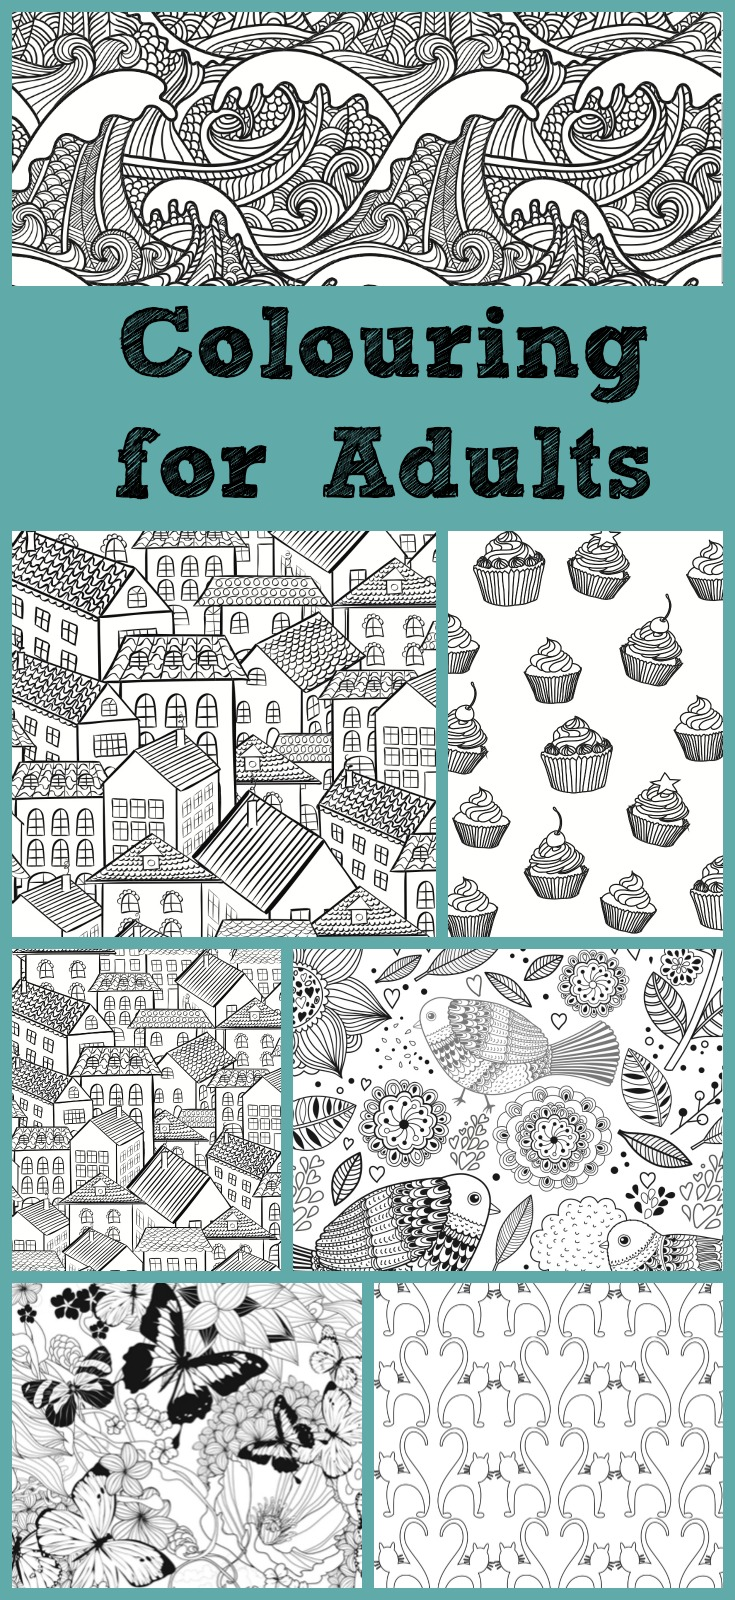 Colouring Books For Adults In The Playroom